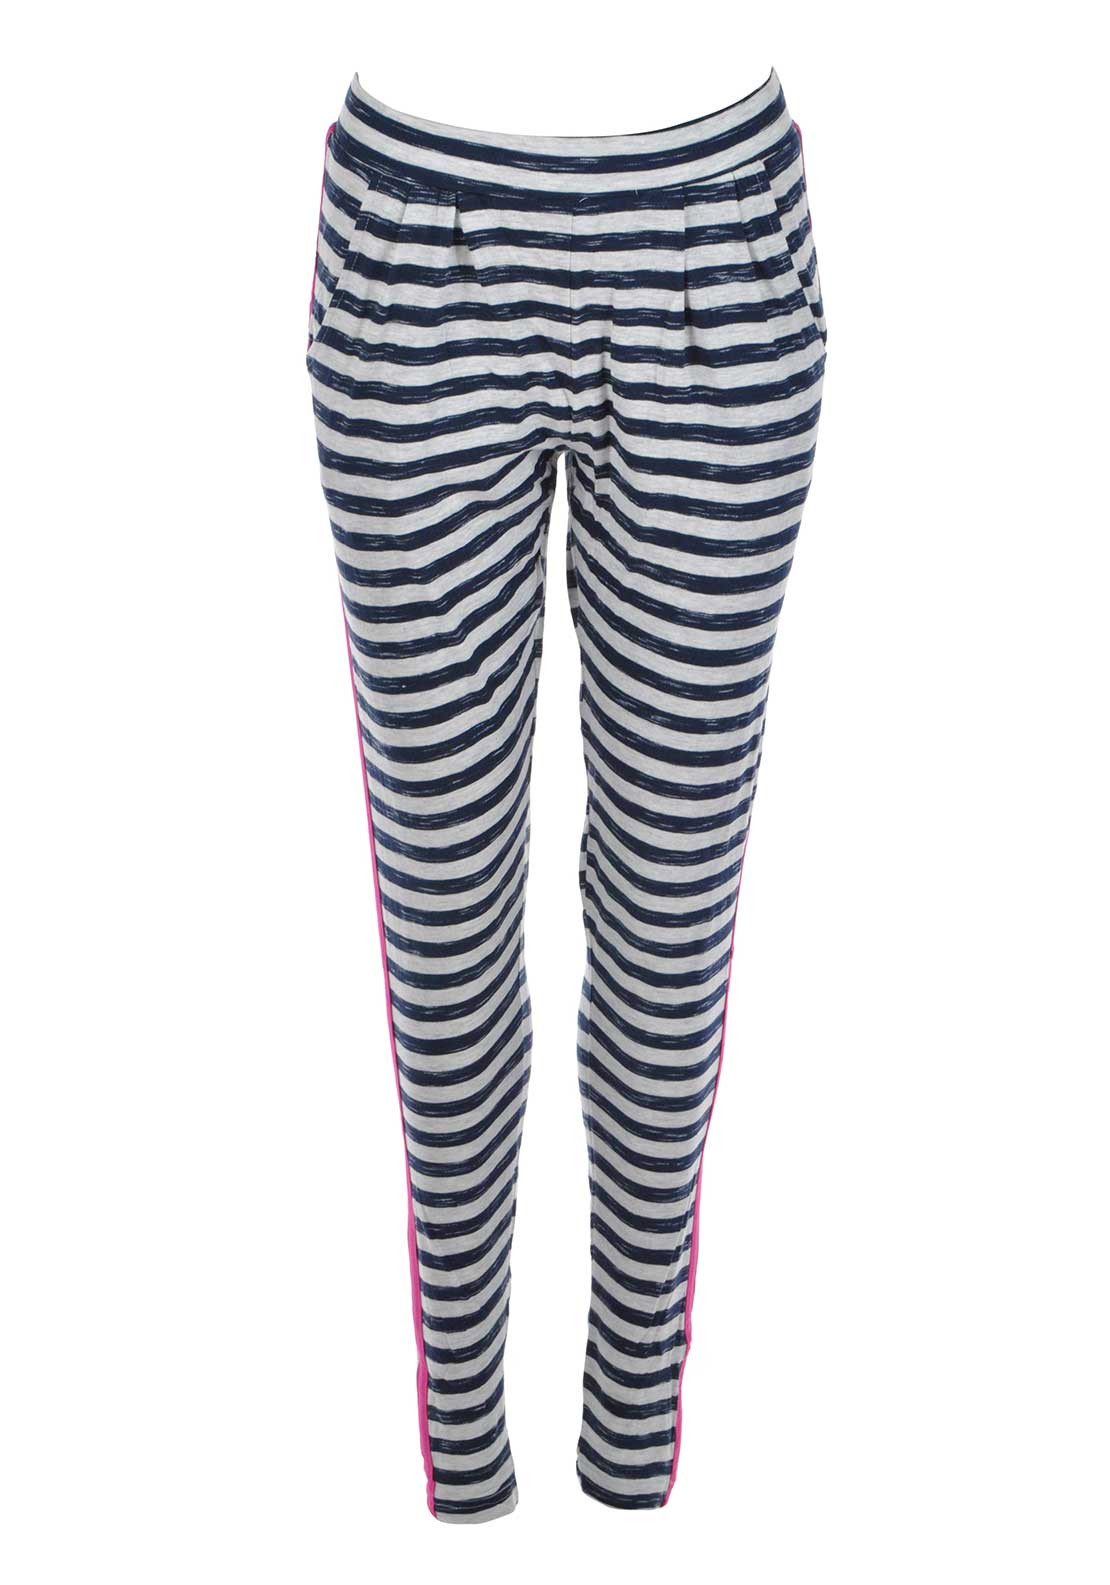 Rebelle Striped Pyjama Bottoms, Grey and Navy